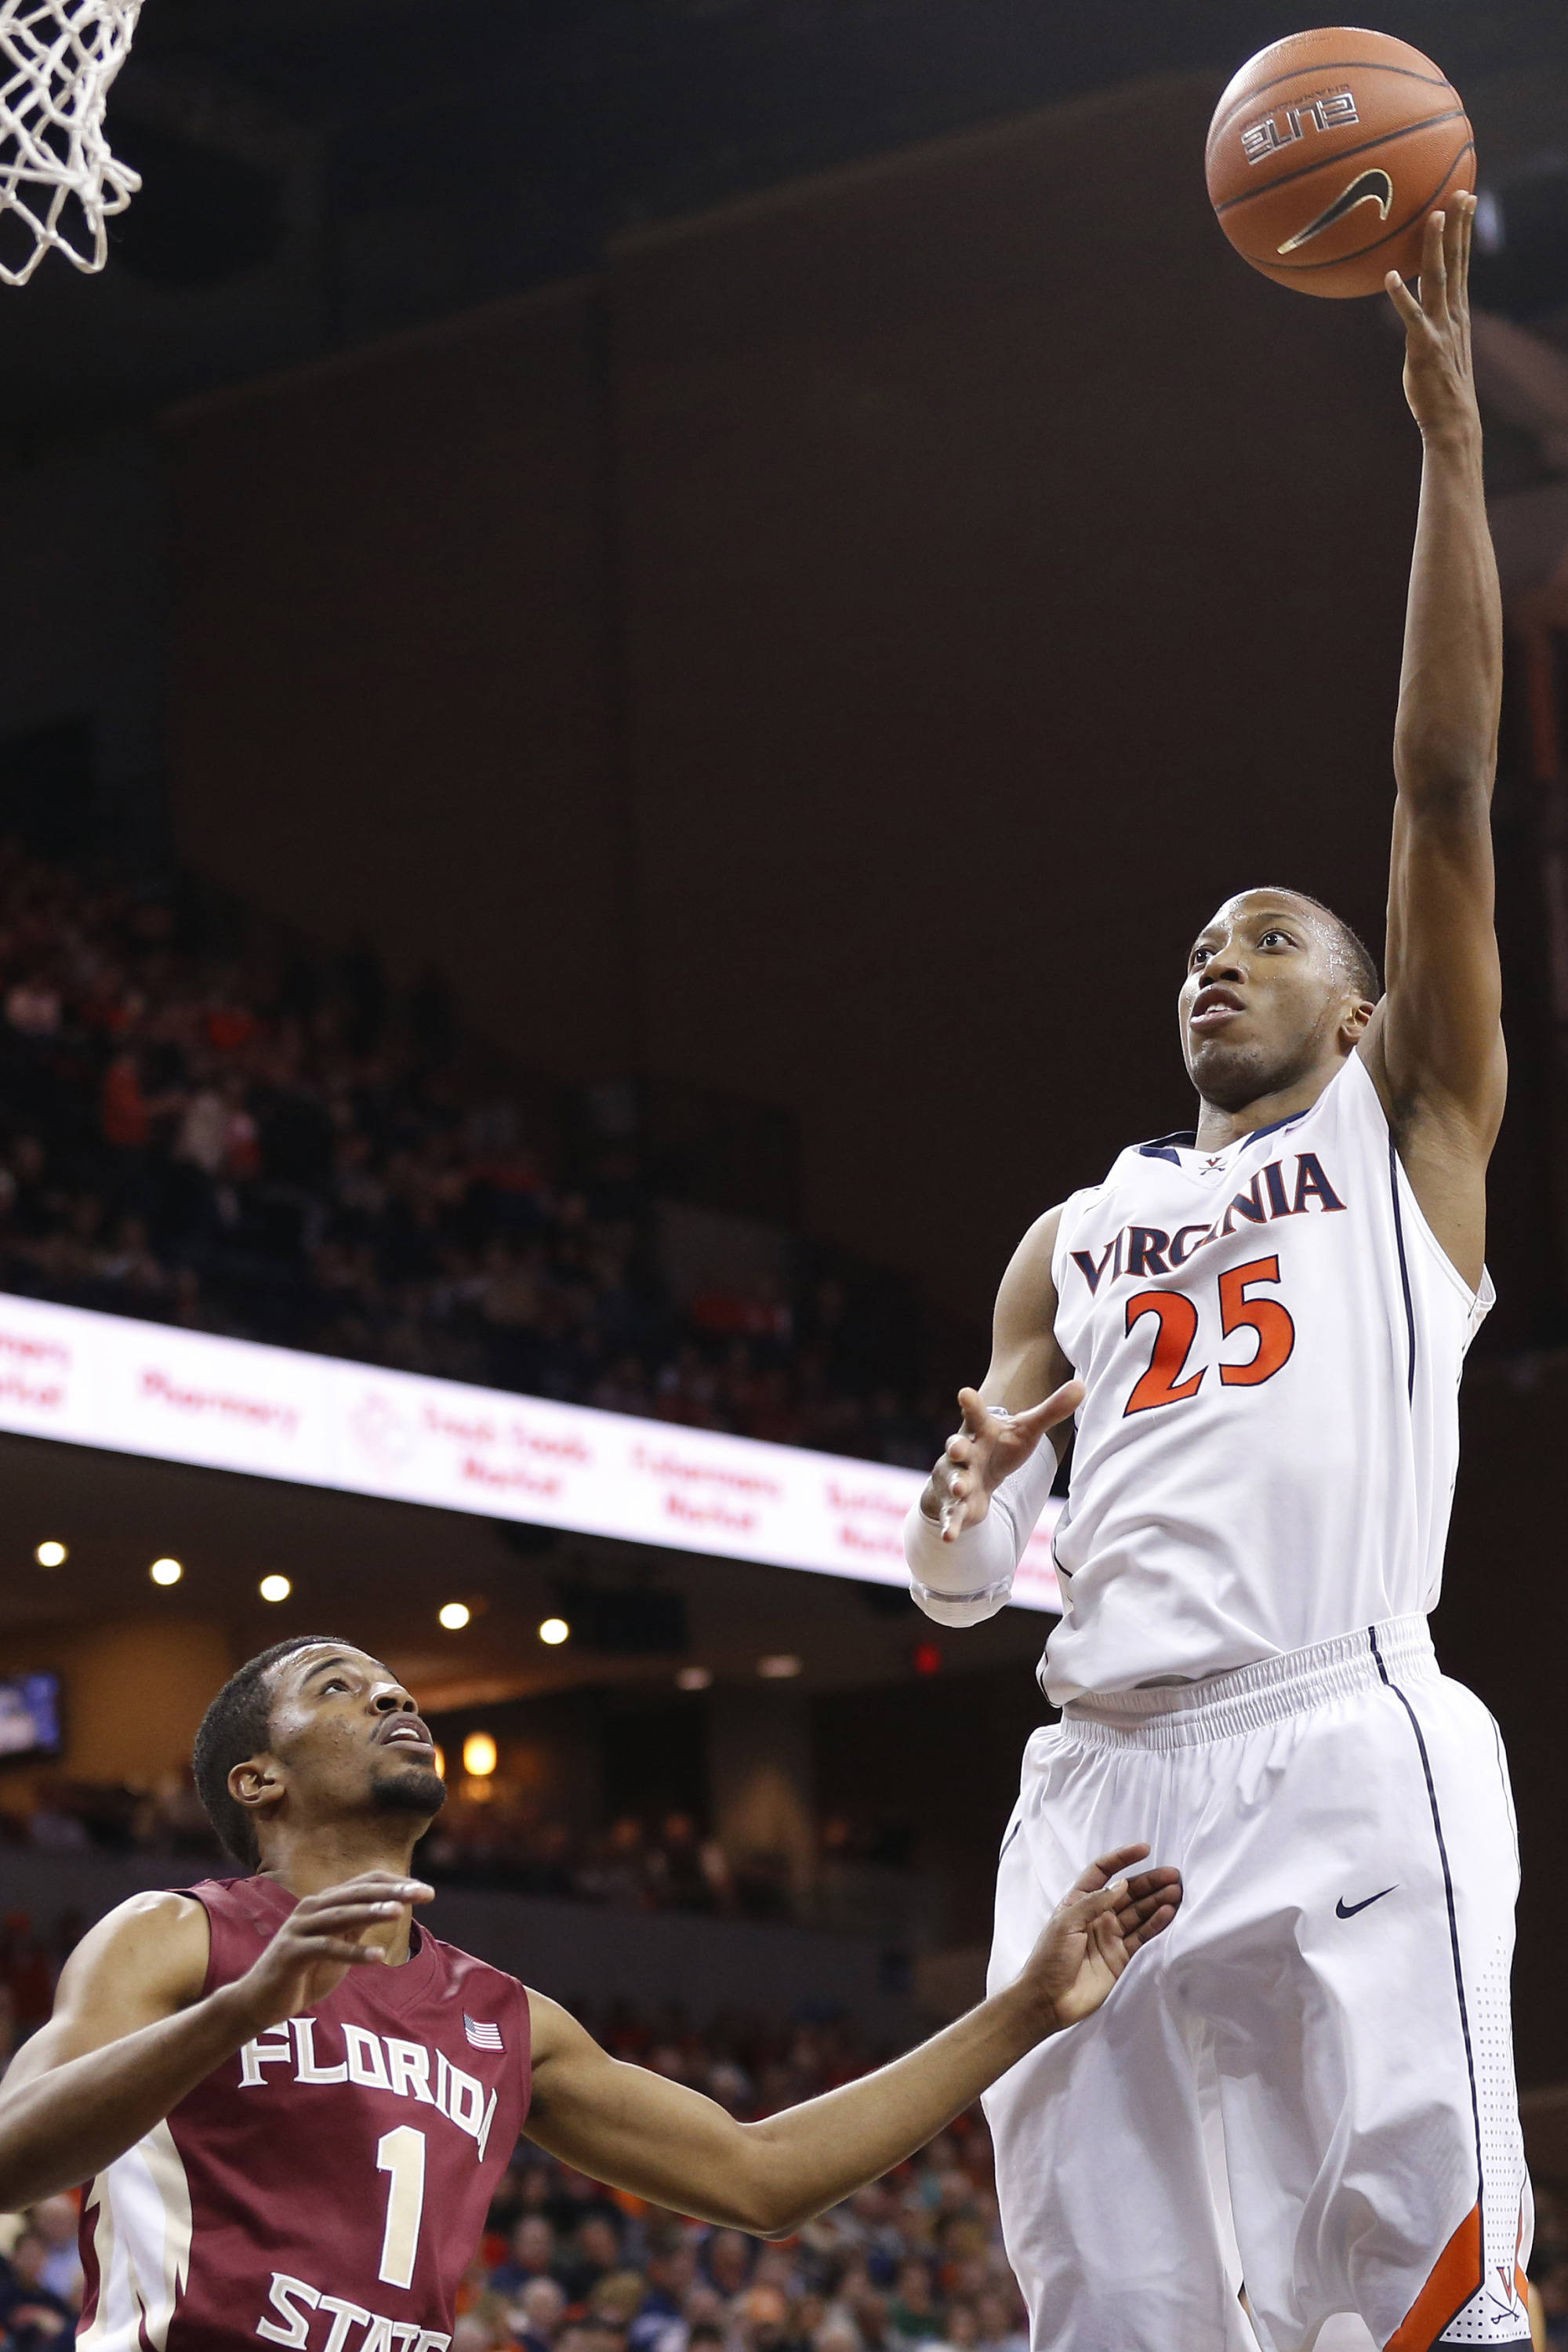 Jan 18, 2014; Charlottesville, VA, USA; Virginia Cavaliers forward Akil Mitchell (25) shoots the ball over Florida State Seminoles guard Devon Bookert (1) in the second half at John Paul Jones Arena. The Cavaliers won 78-66. Mandatory Credit: Geoff Burke-USA TODAY Sports